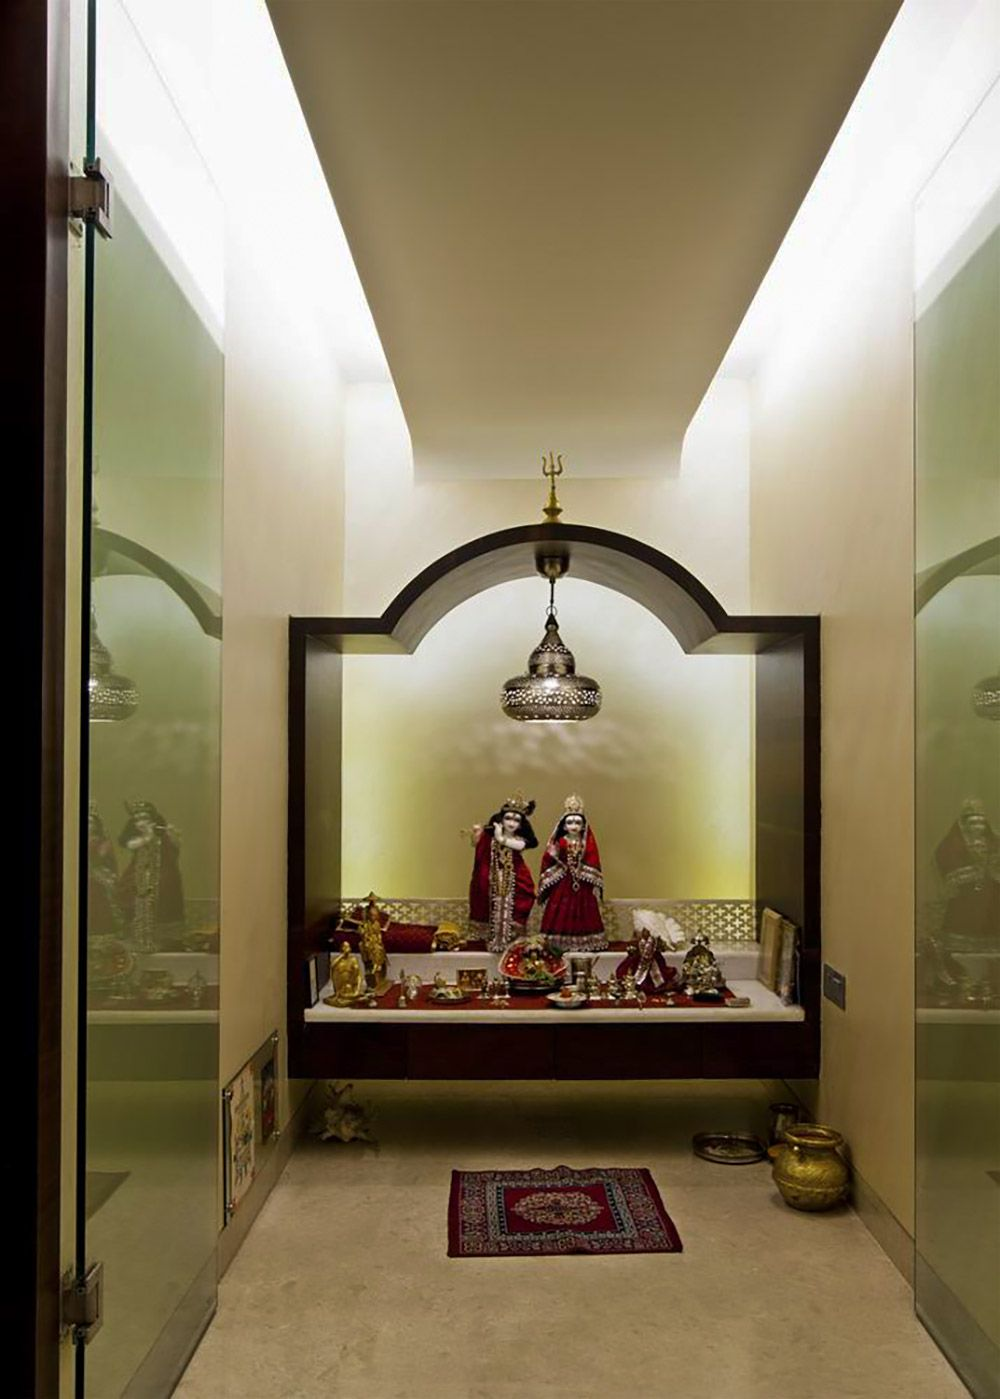 Designs Of Rooms: Pooja Rooms, Room Design, Puja